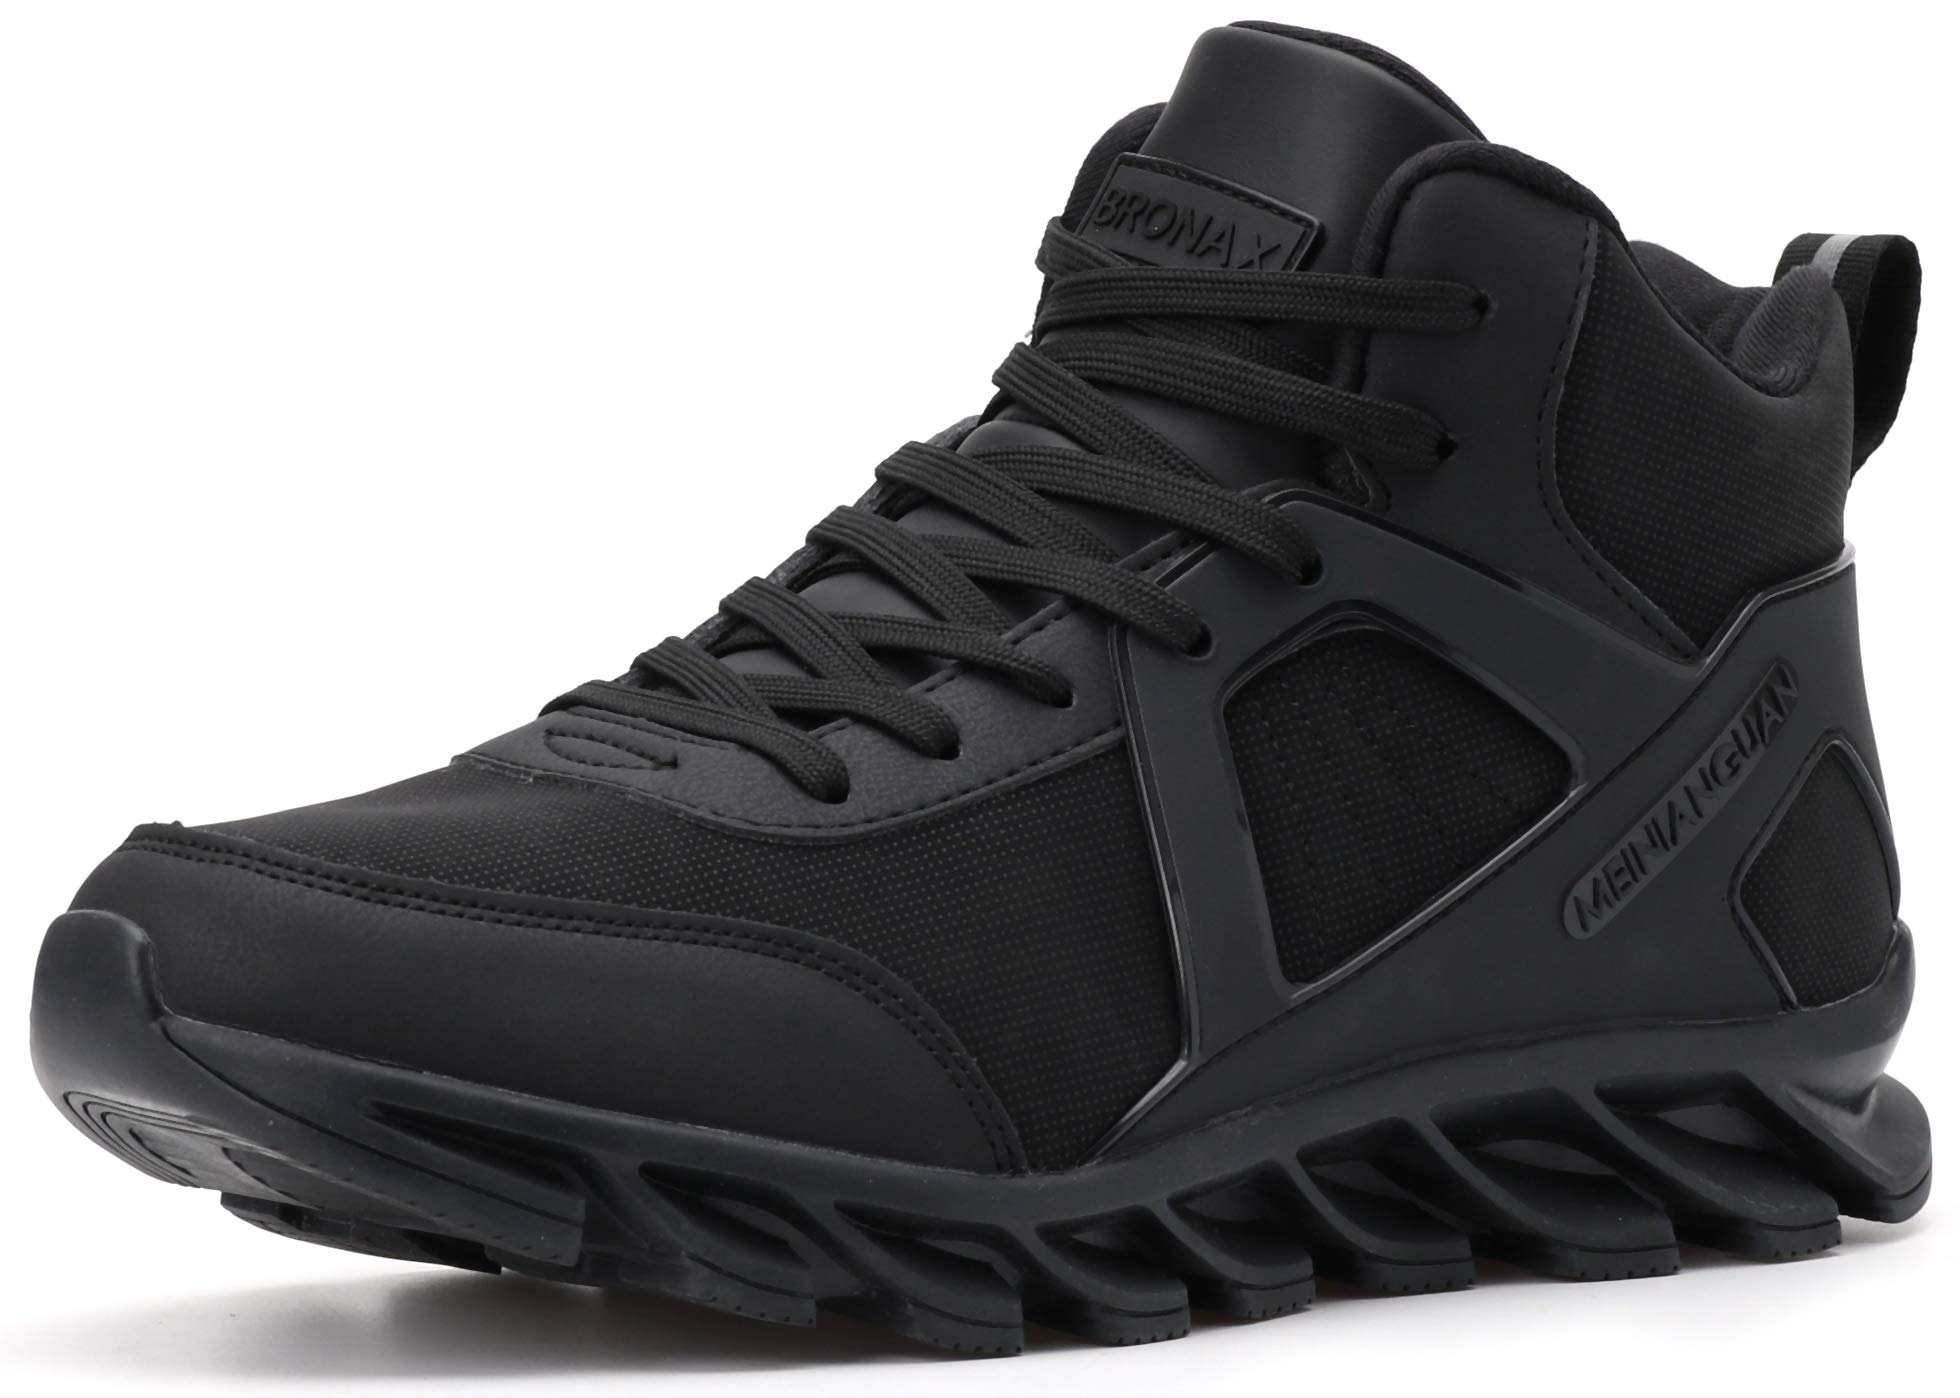 BRONAX High Top Basketball Shoes Leather Lace Up Gifts Tennis for Mens Youth Boys Sports Athletic Street Hightop with Ankle Support Zapatos de Basketball Hombre All Black Size 12 by BRONAX